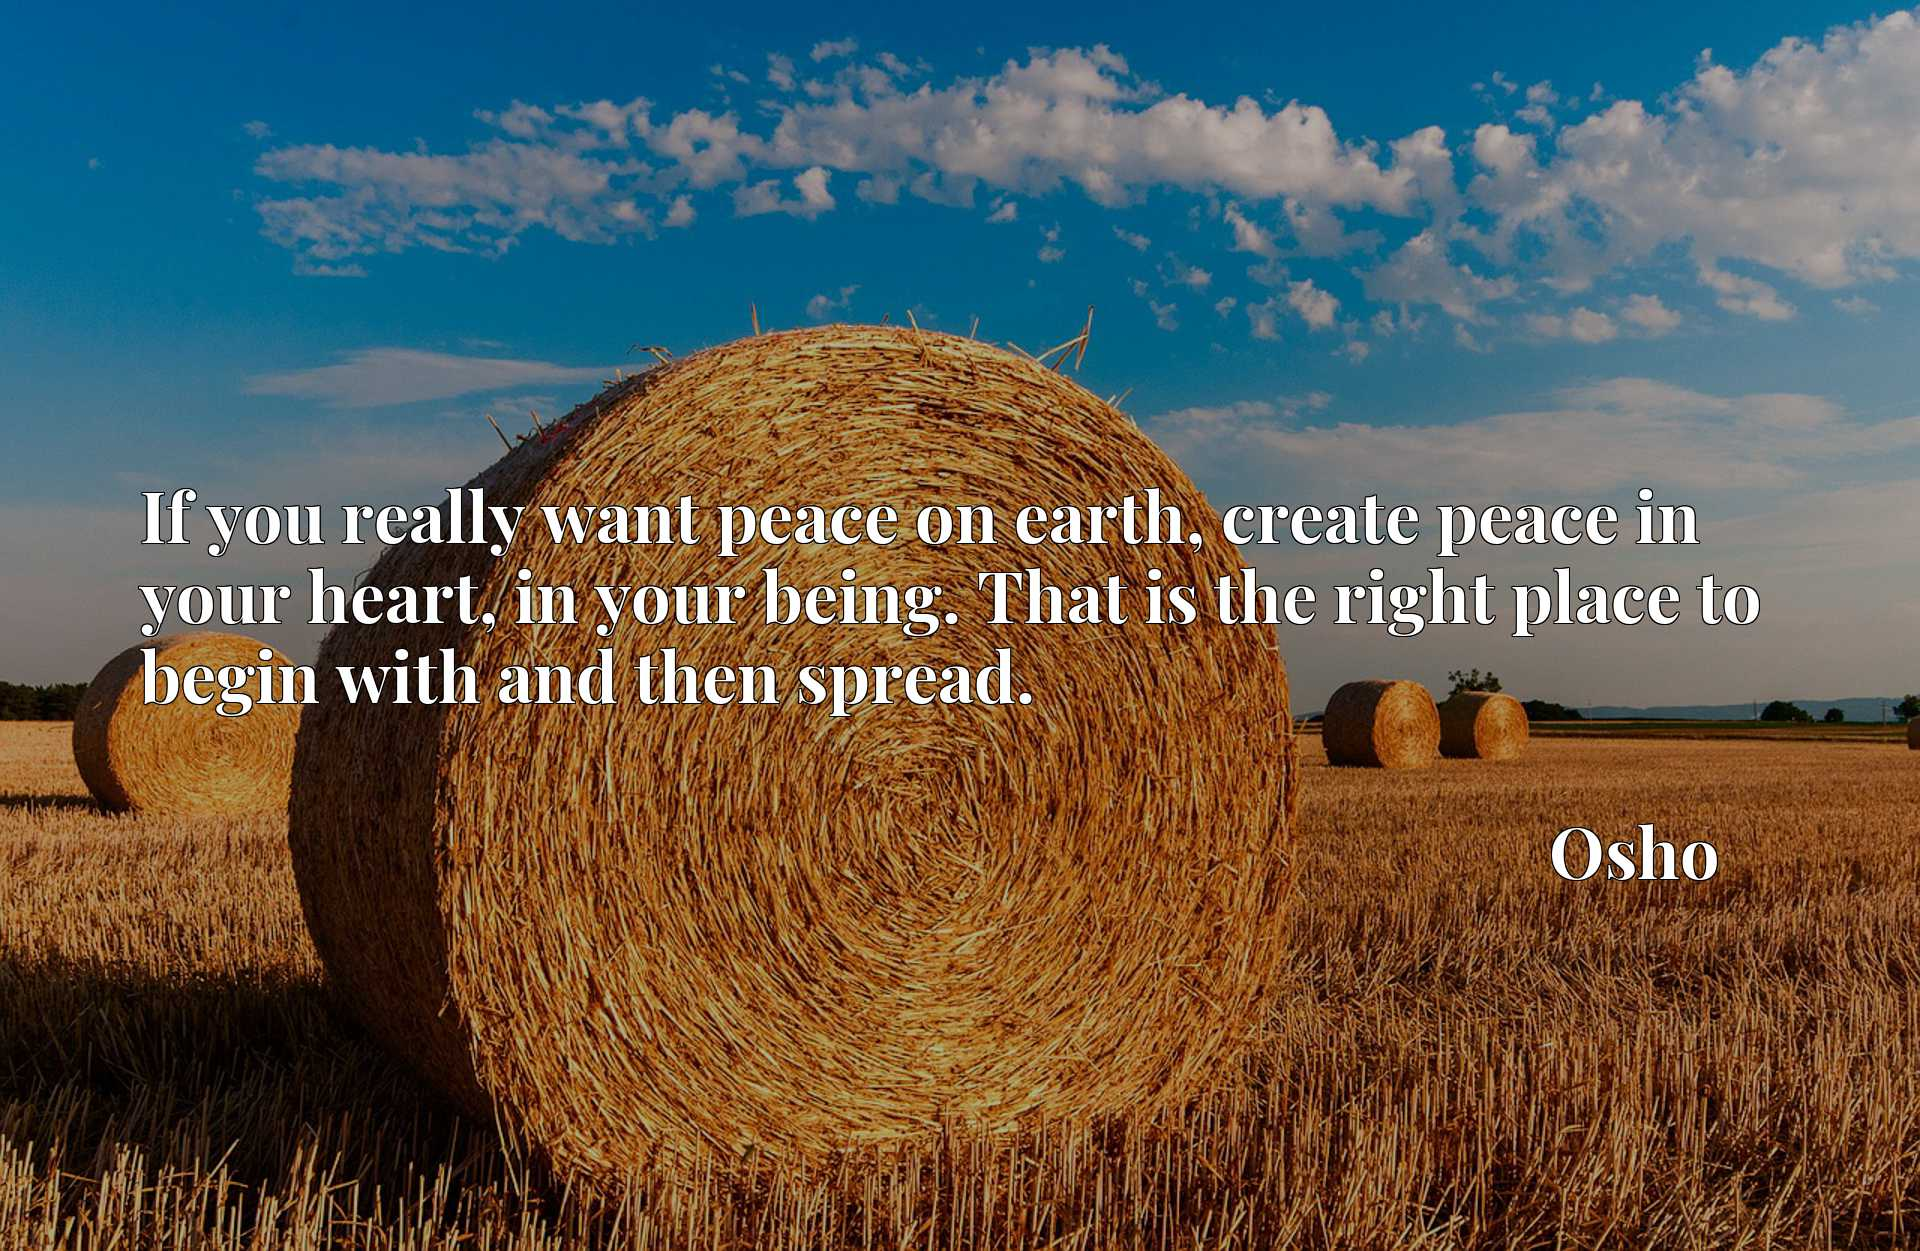 Quote Picture :If you really want peace on earth, create peace in your heart, in your being. That is the right place to begin with and then spread.